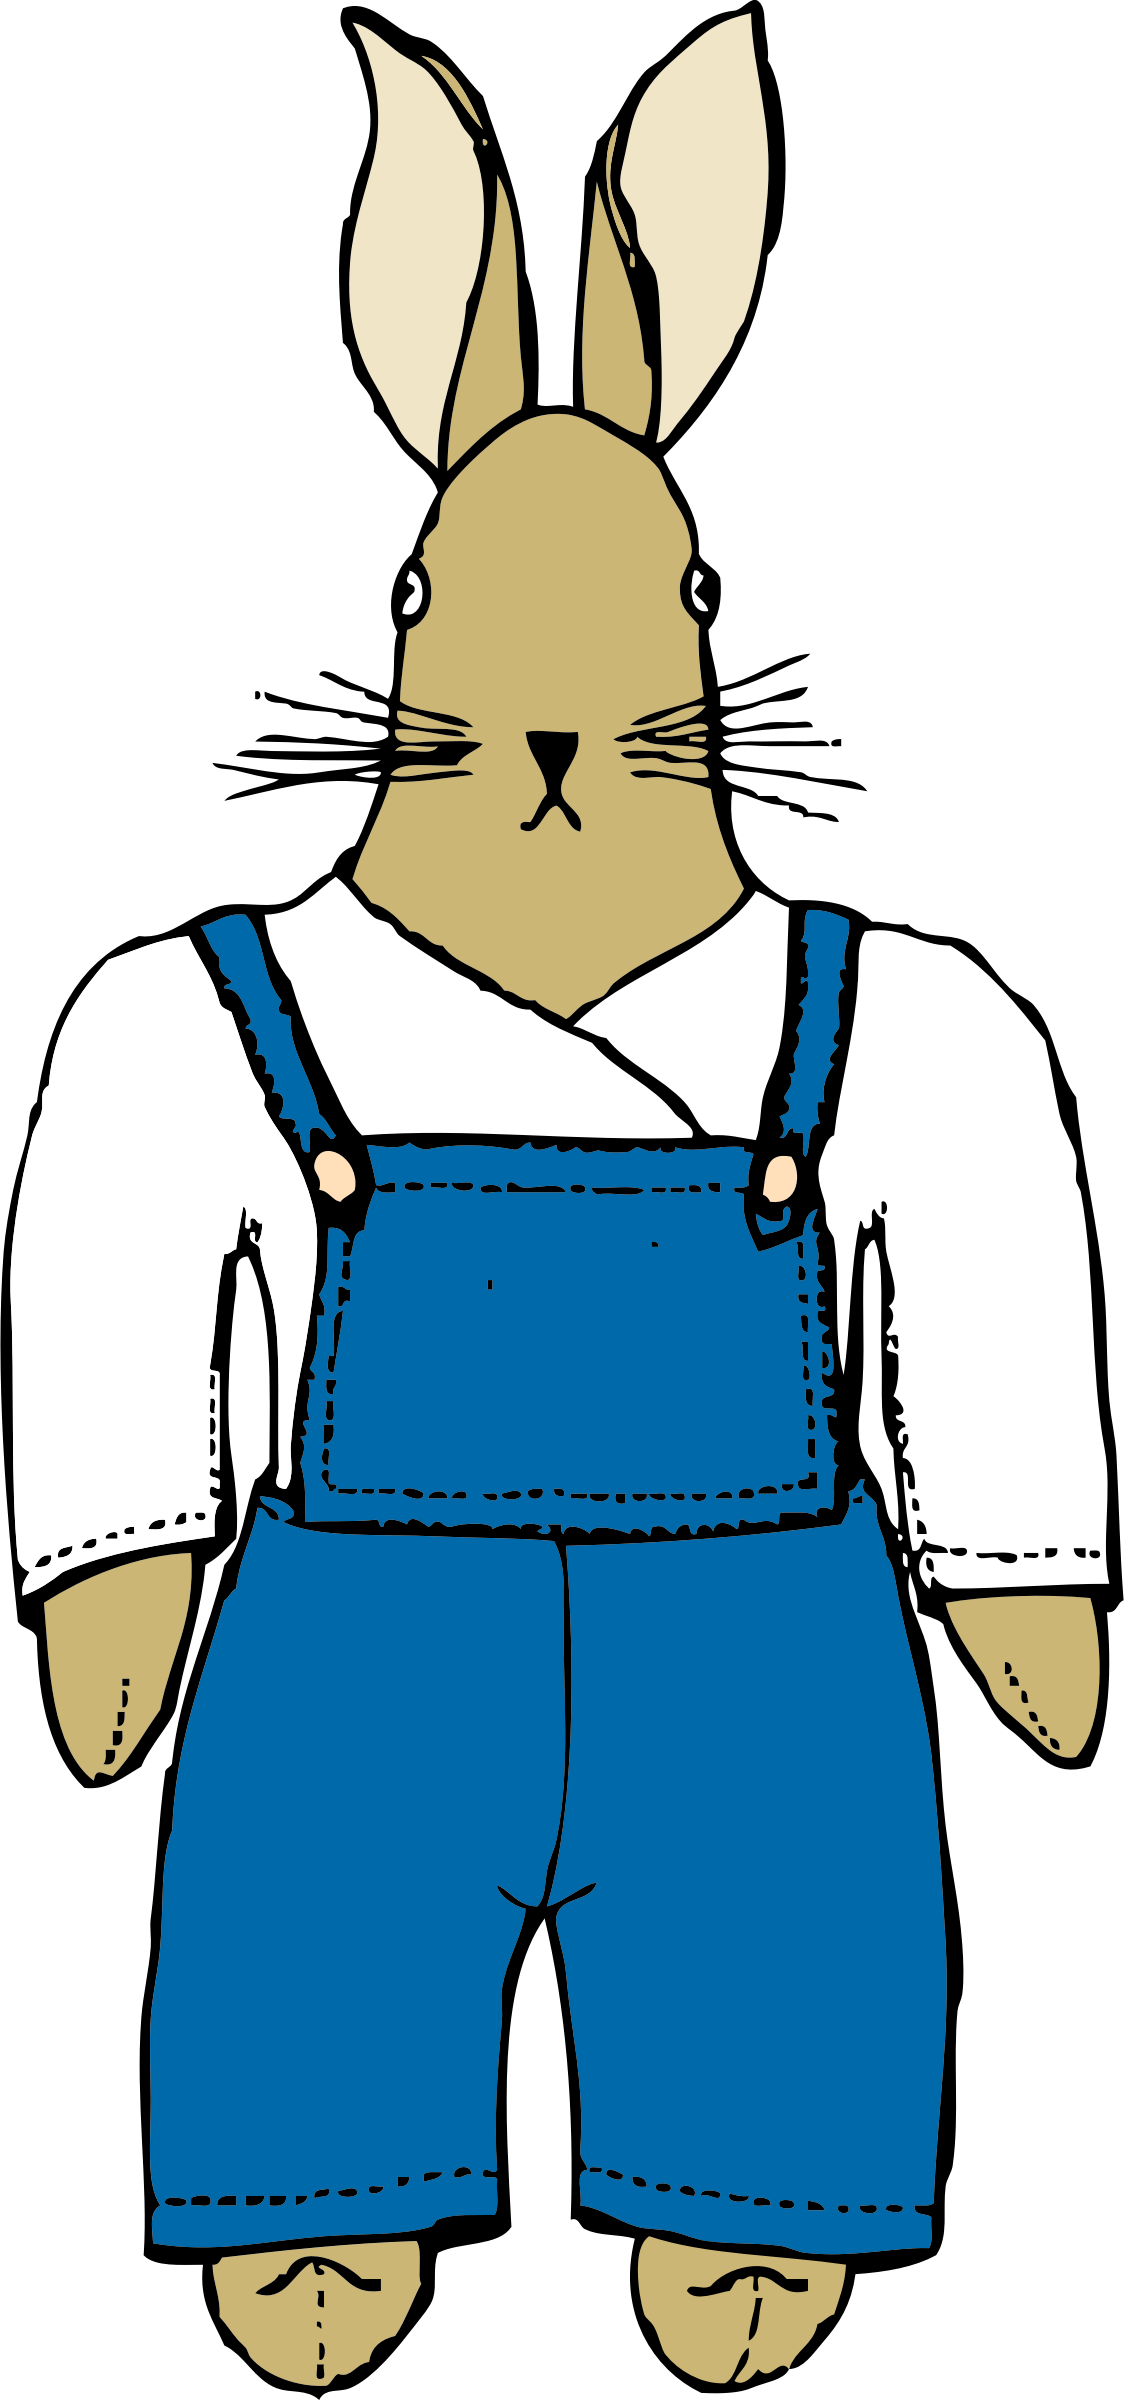 bunny in overalls front view by johnny_automatic